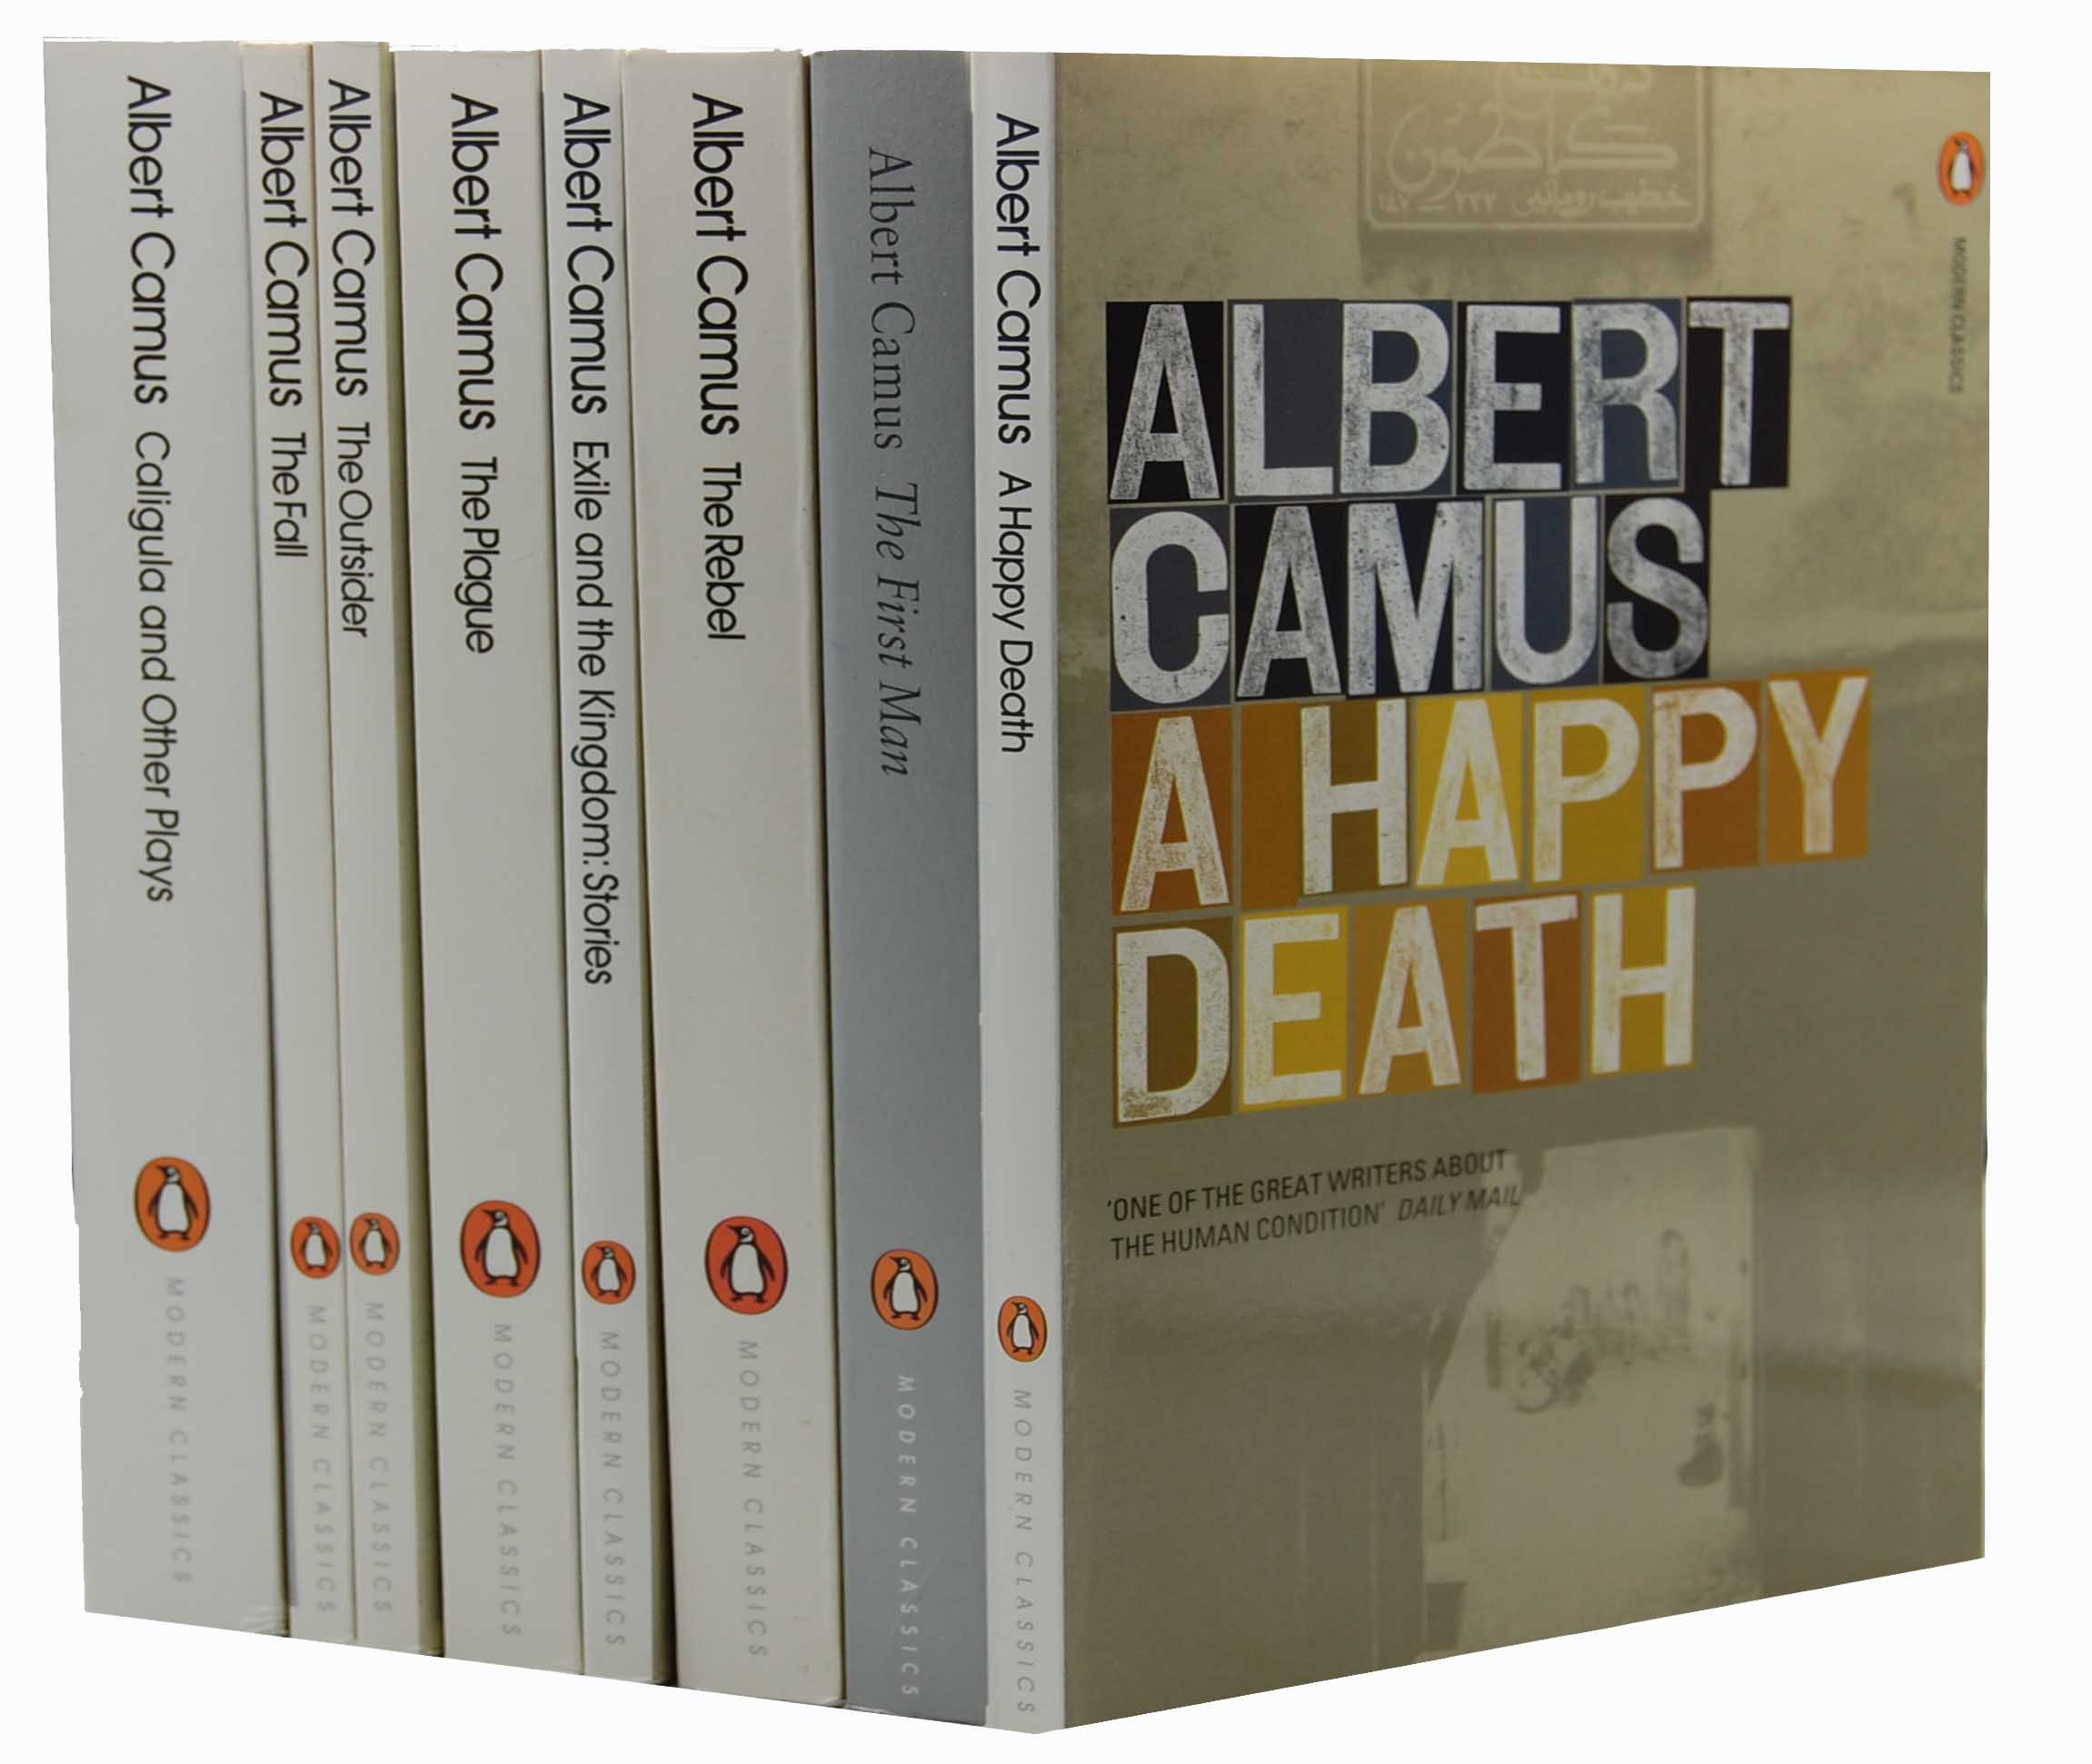 albert camus 8 books collection set the first man the rebel albert camus 8 books collection set the first man the rebel exile and the kingdom stories the plague the outsider the fall a happy death